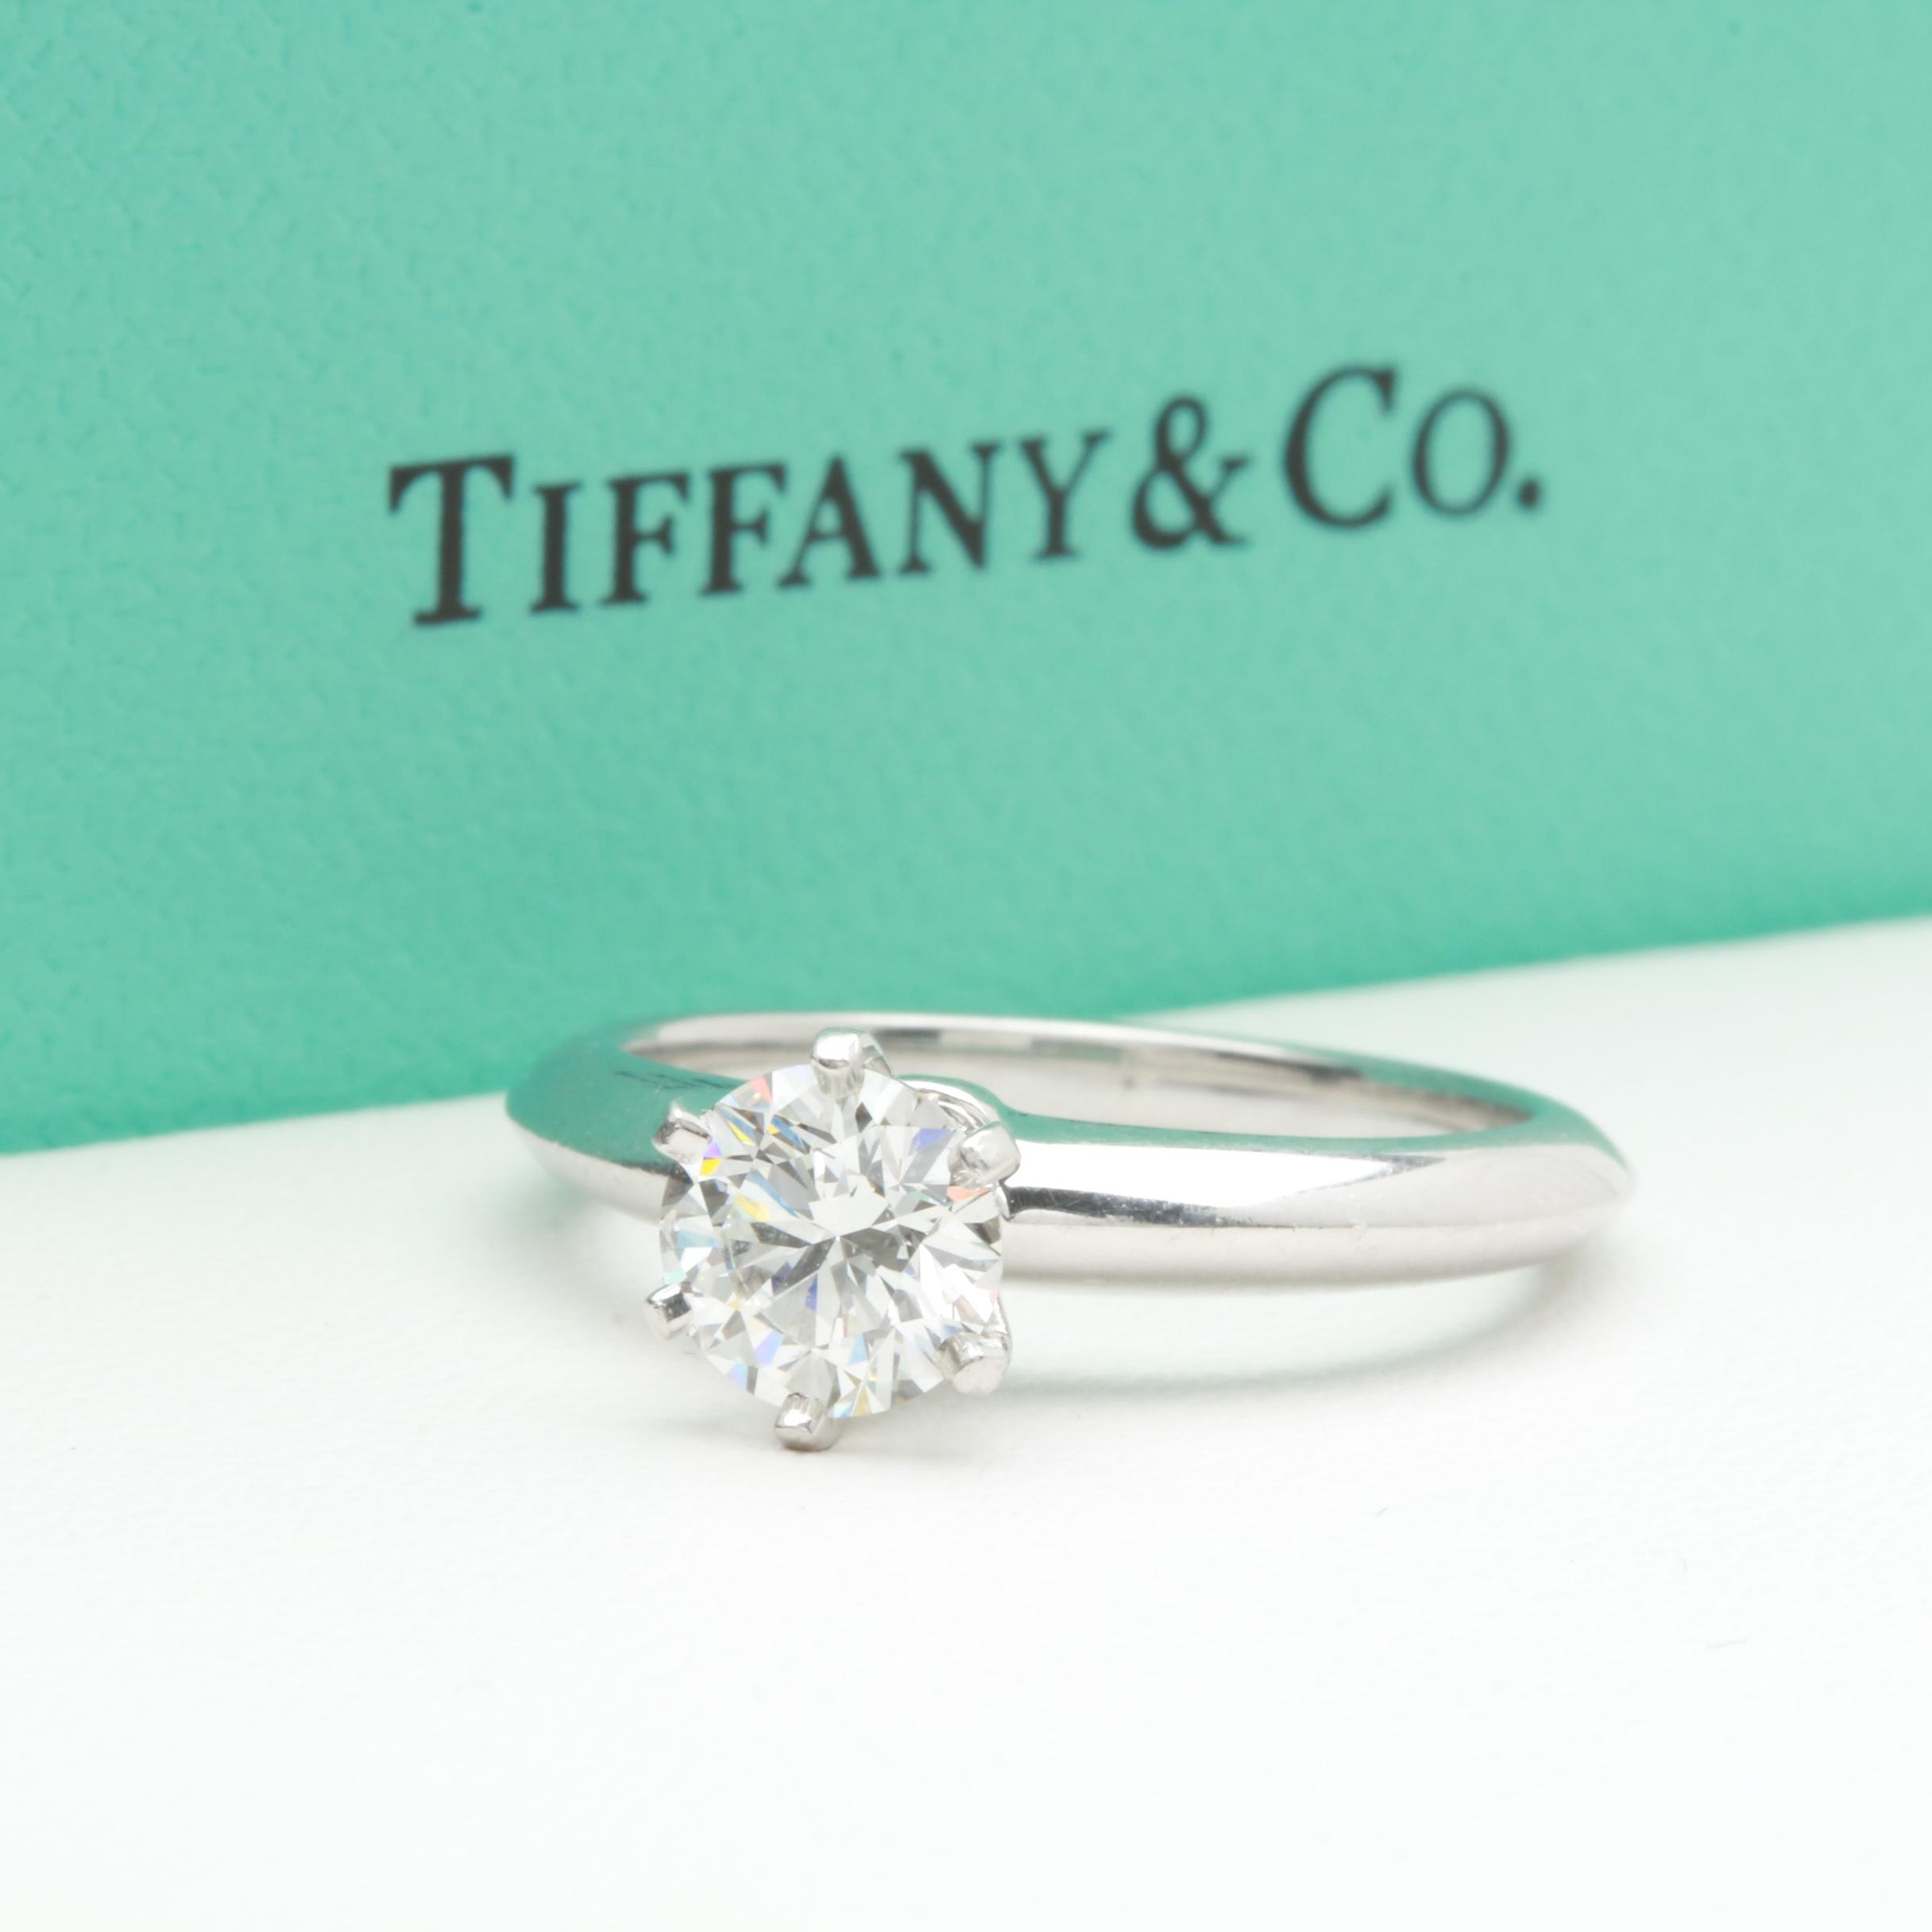 Tiffany & Co. Platinum Diamond Solitaire Ring With Certification and Box